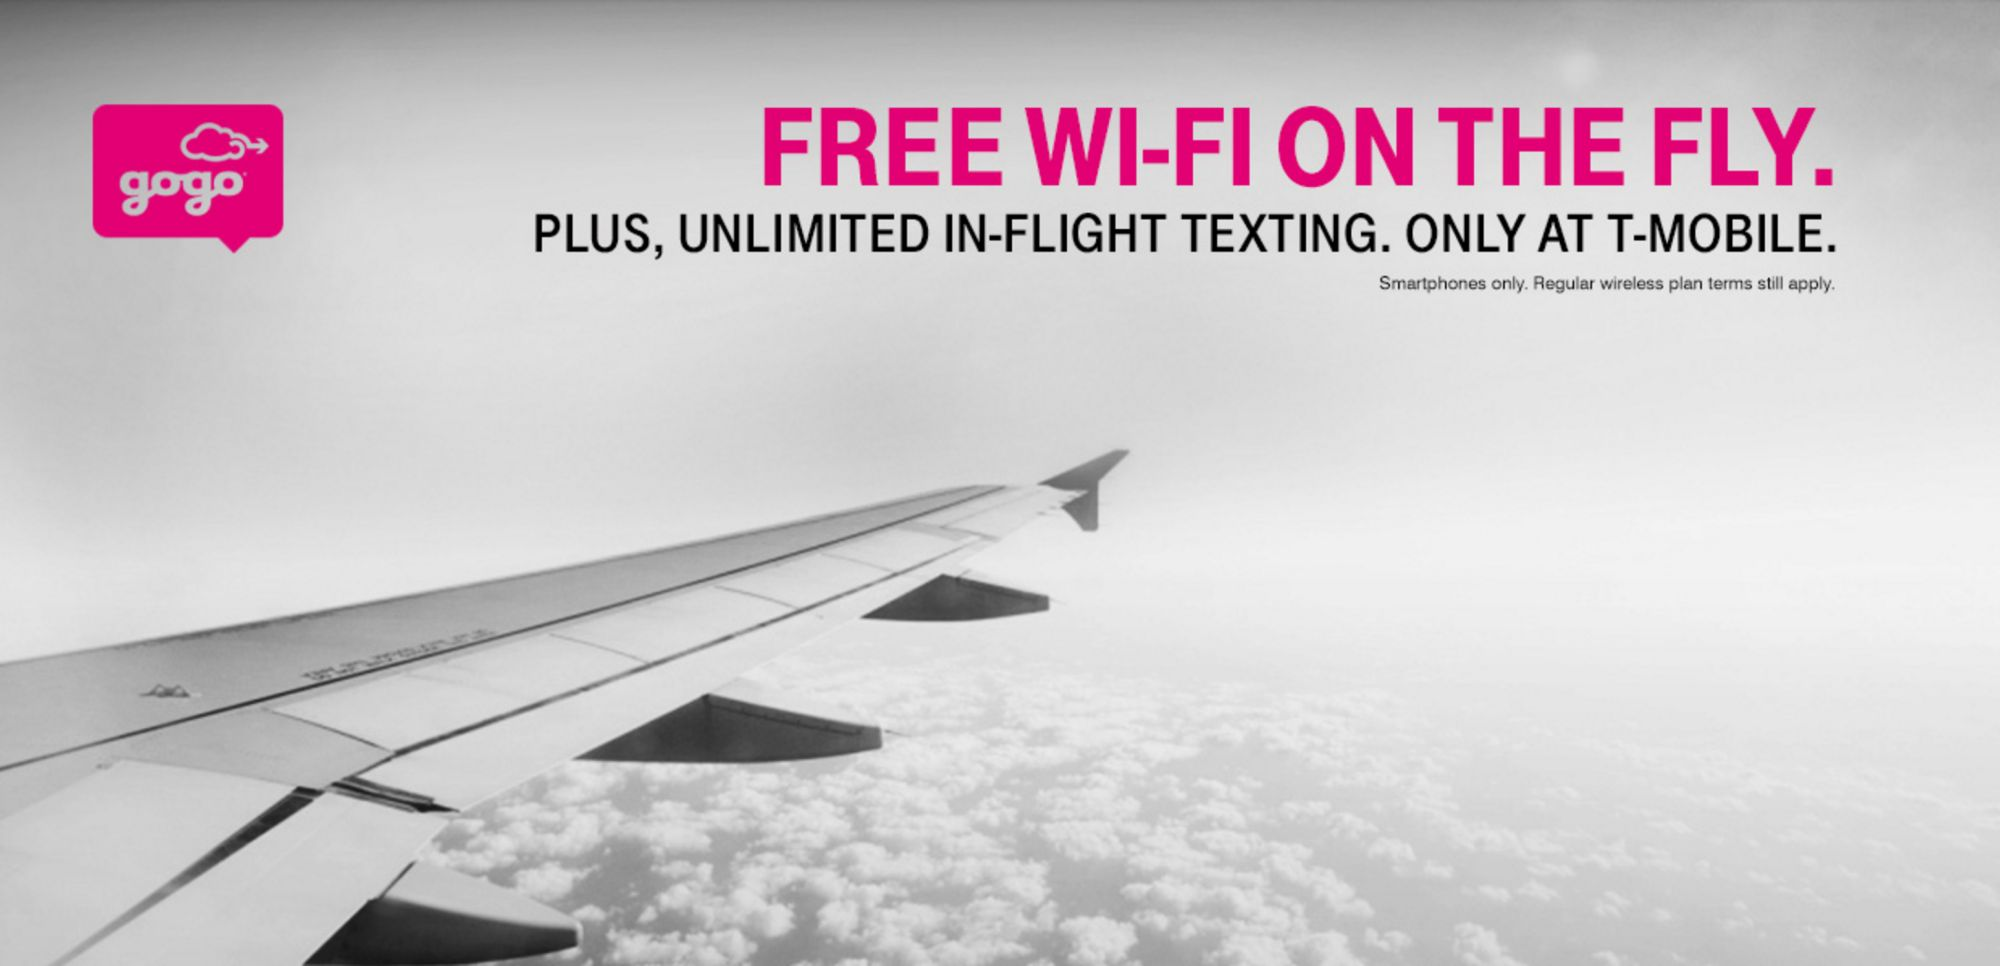 T Mobile Inflight Wifi Alaska Airlines Inflight Entertainment Changes 2017 Free